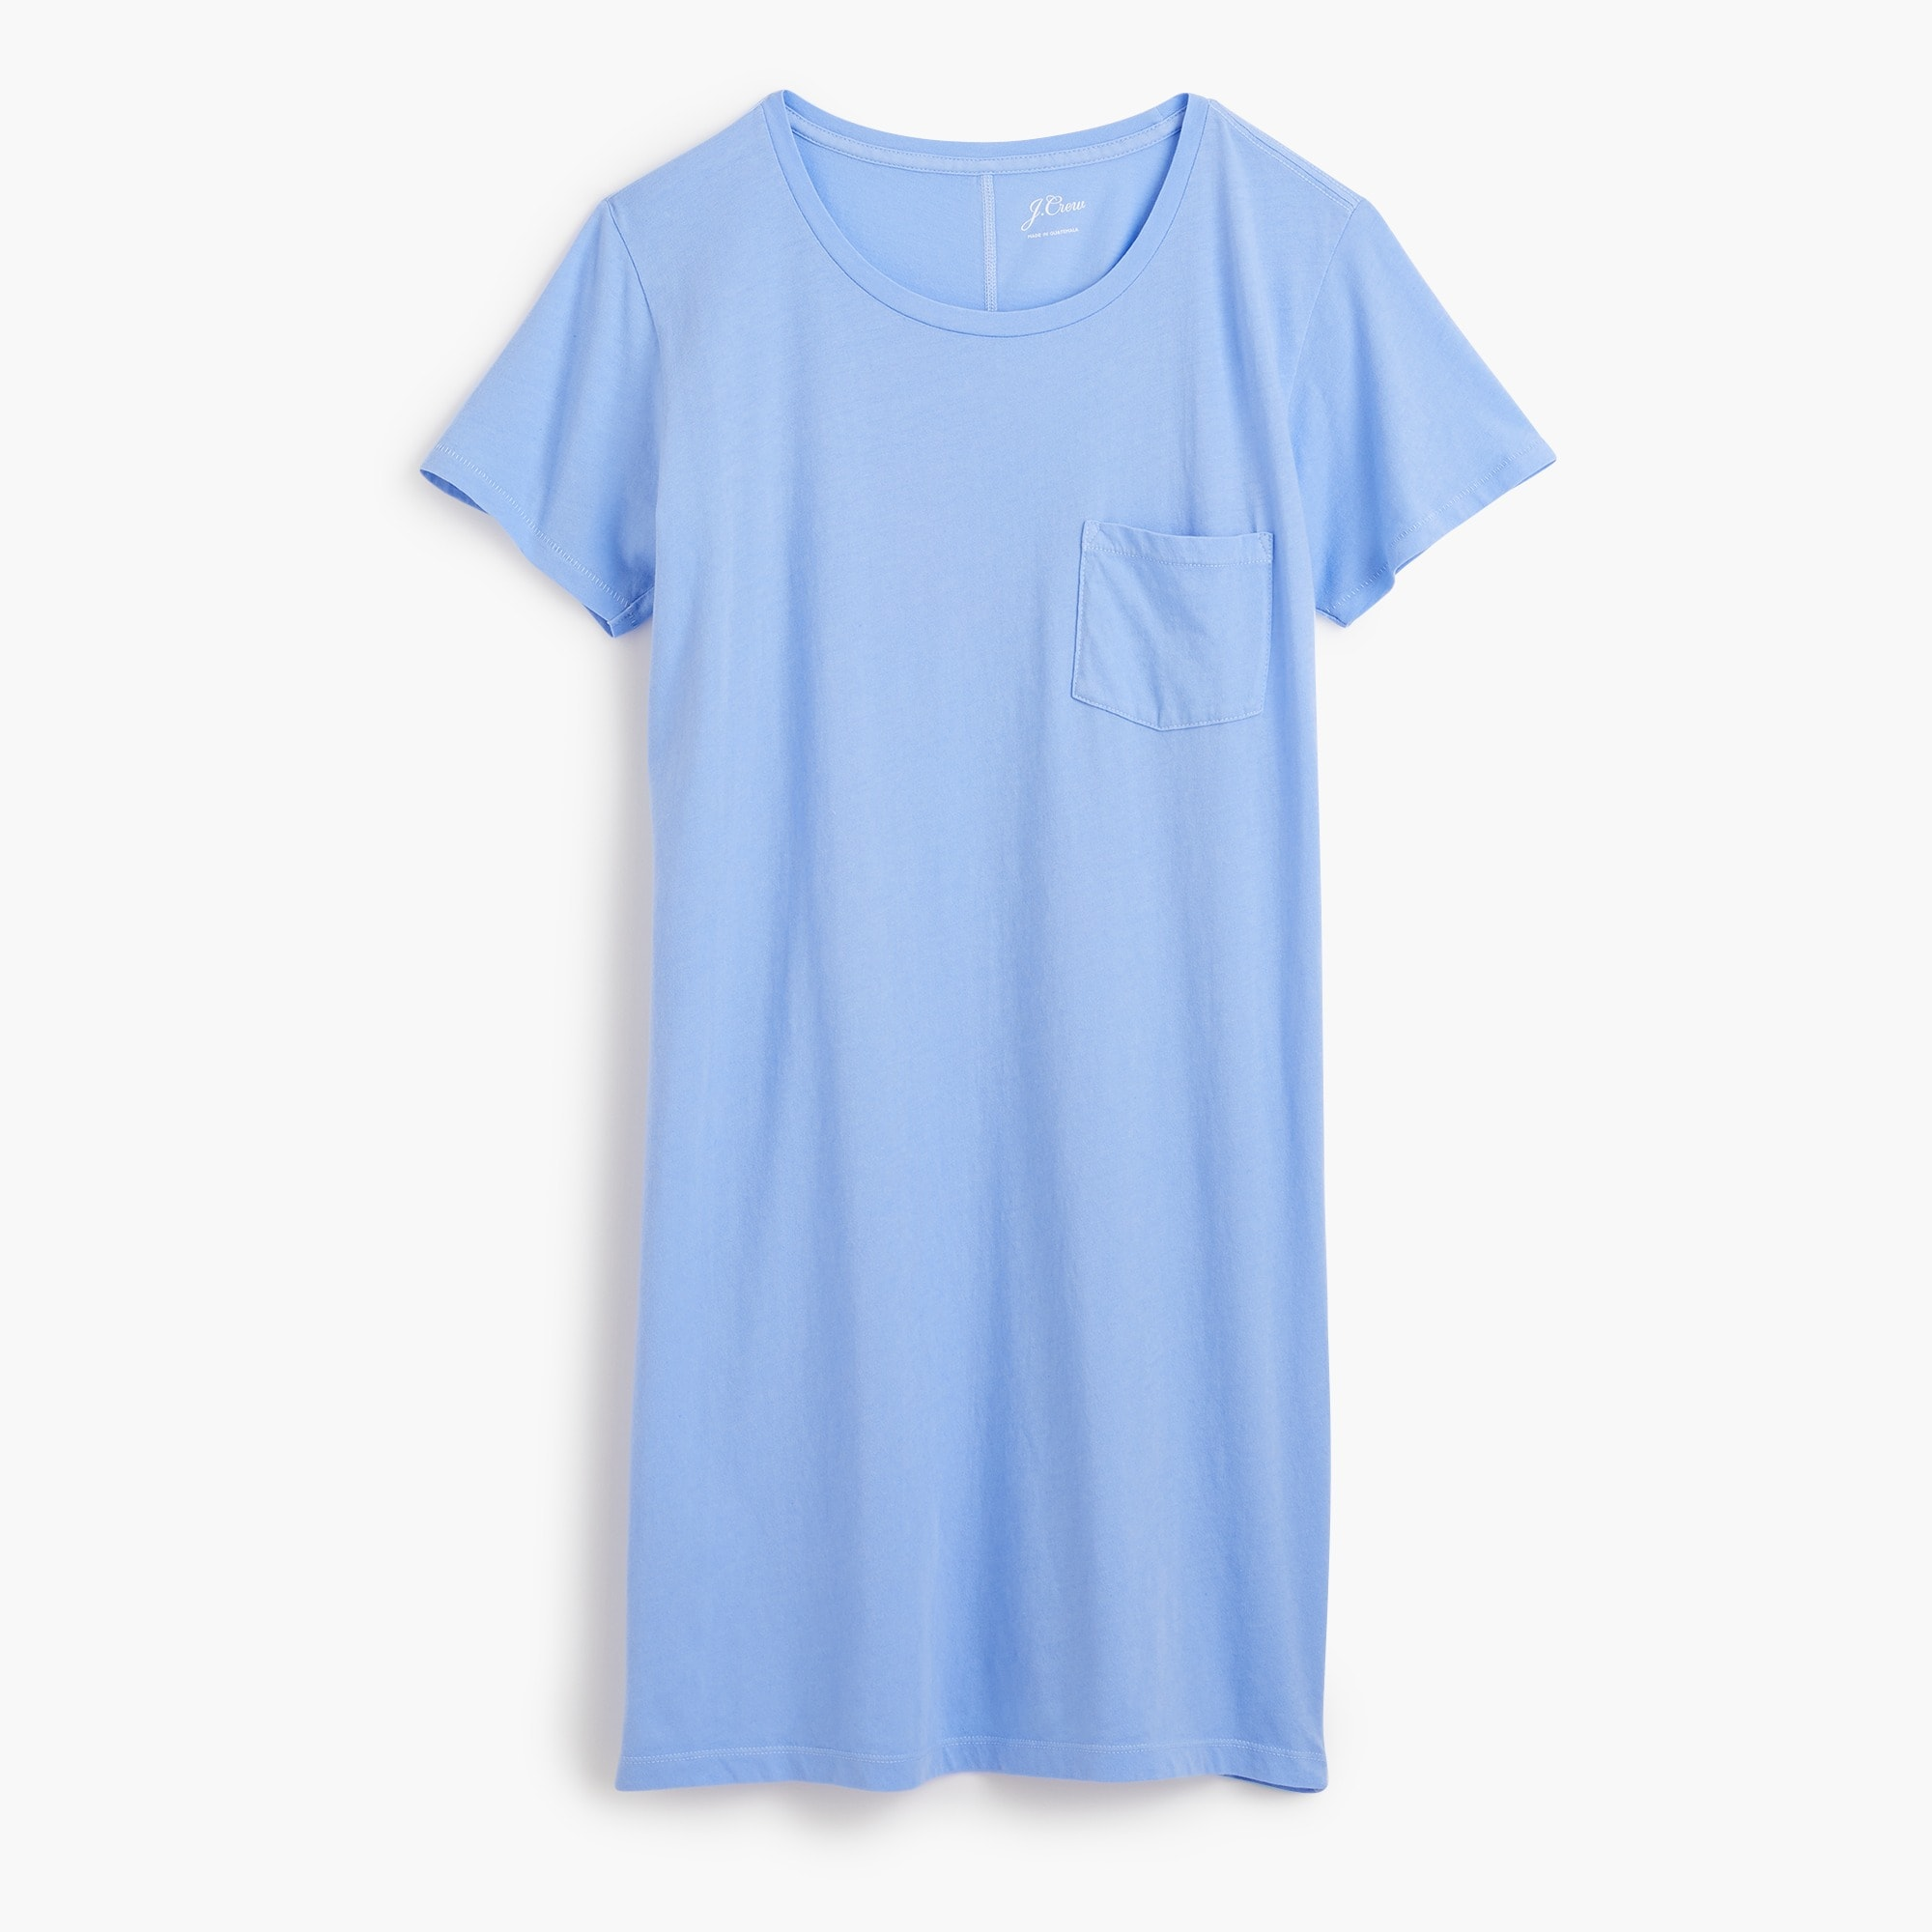 Image 1 for Garment-dyed pocket T-shirt dress